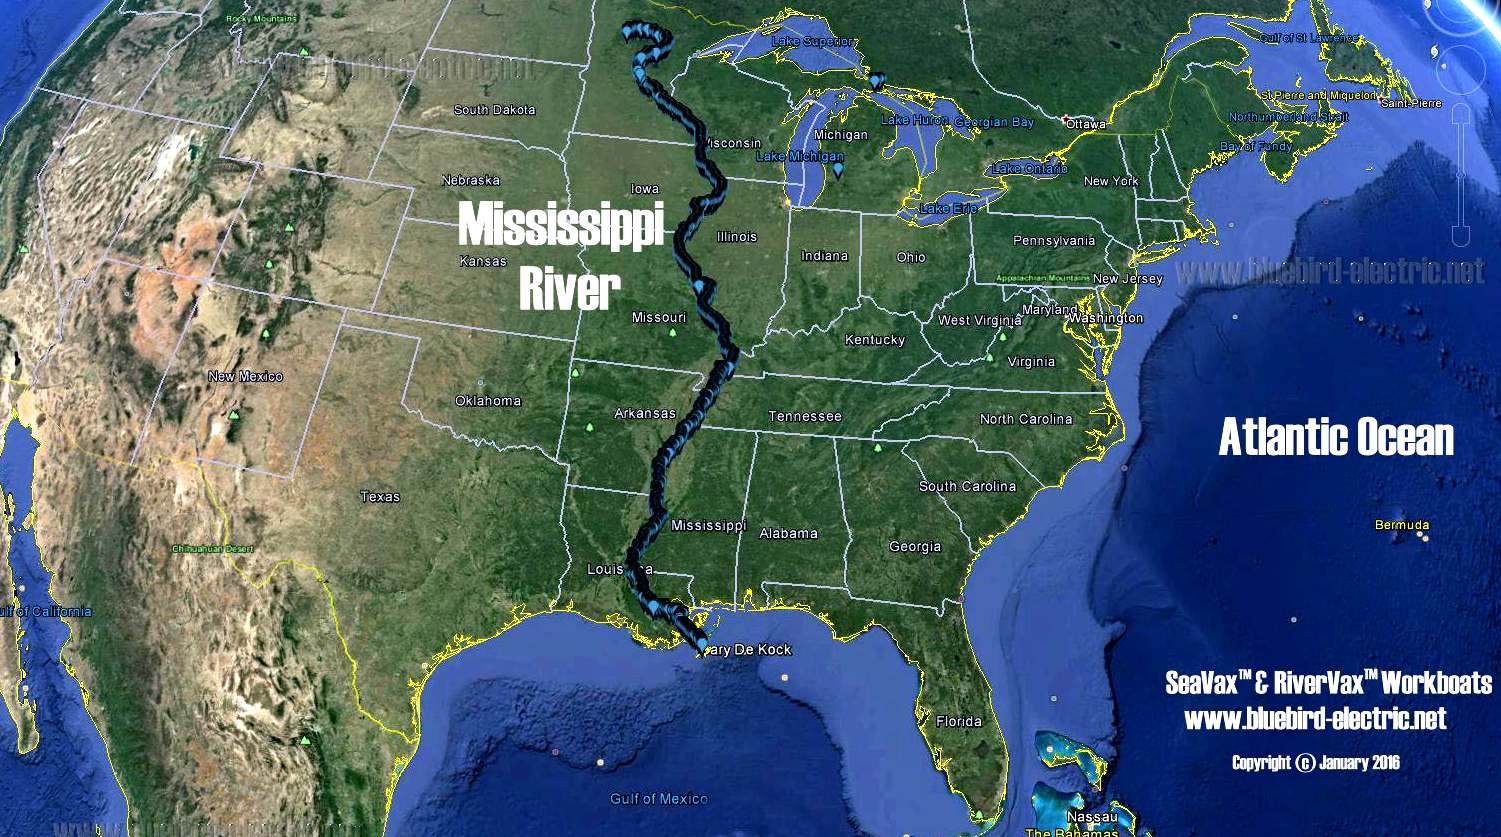 THE MISSISSIPPI RIVER on resources of mississippi, t-mobile map of mississippi, topographic map of mississippi, products of mississippi, google maps with county lines, map of louisiana and mississippi, features of mississippi, home of mississippi, information of mississippi, events of mississippi, physical map of mississippi, mississippi map of hazlehurst mississippi, map natchez mississippi, satellite map of mississippi, county map of mississippi, mapquest of mississippi, book of mississippi, map of hattiesburg mississippi, city of mississippi, map of southern mississippi,